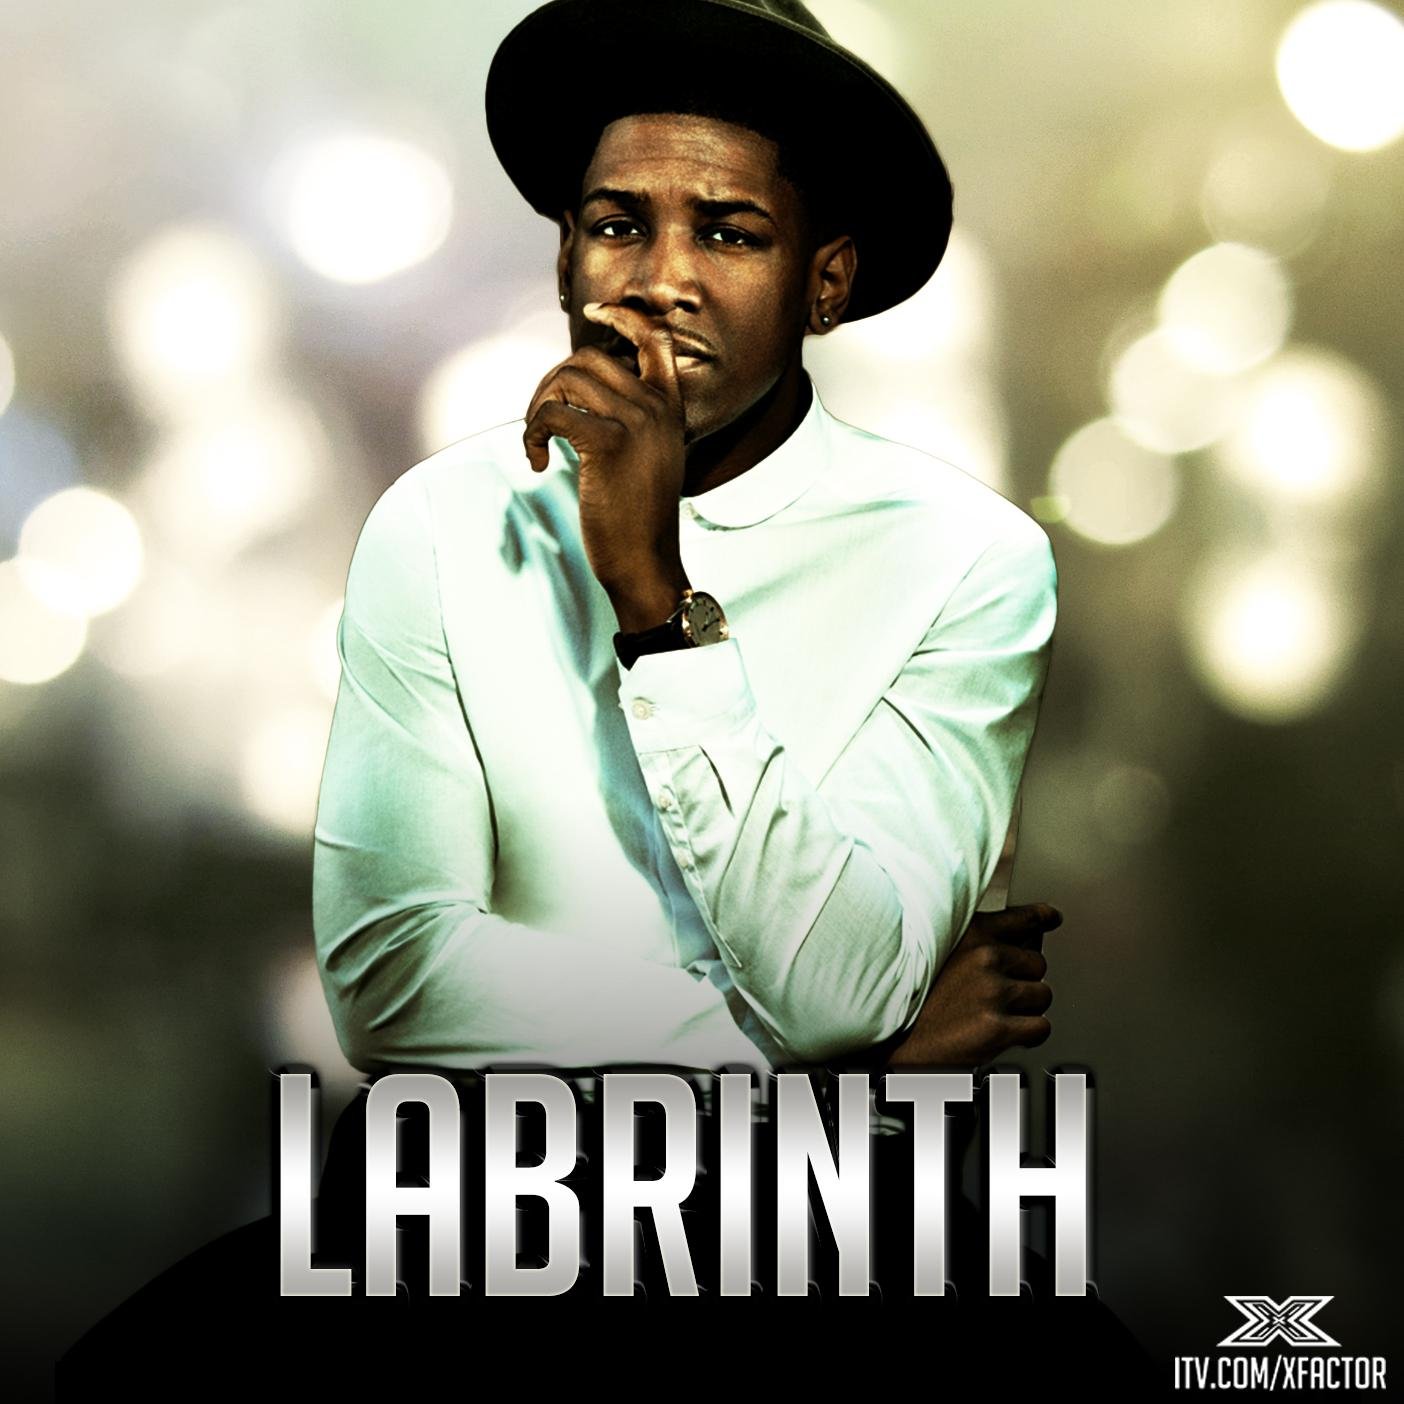 Welcome the a-mazing @Labrinthda1st to the stage/piano, performing his new track #Jealous. 👏🎹 🎶 #XFactorResults http://t.co/ffpMaVaUOP